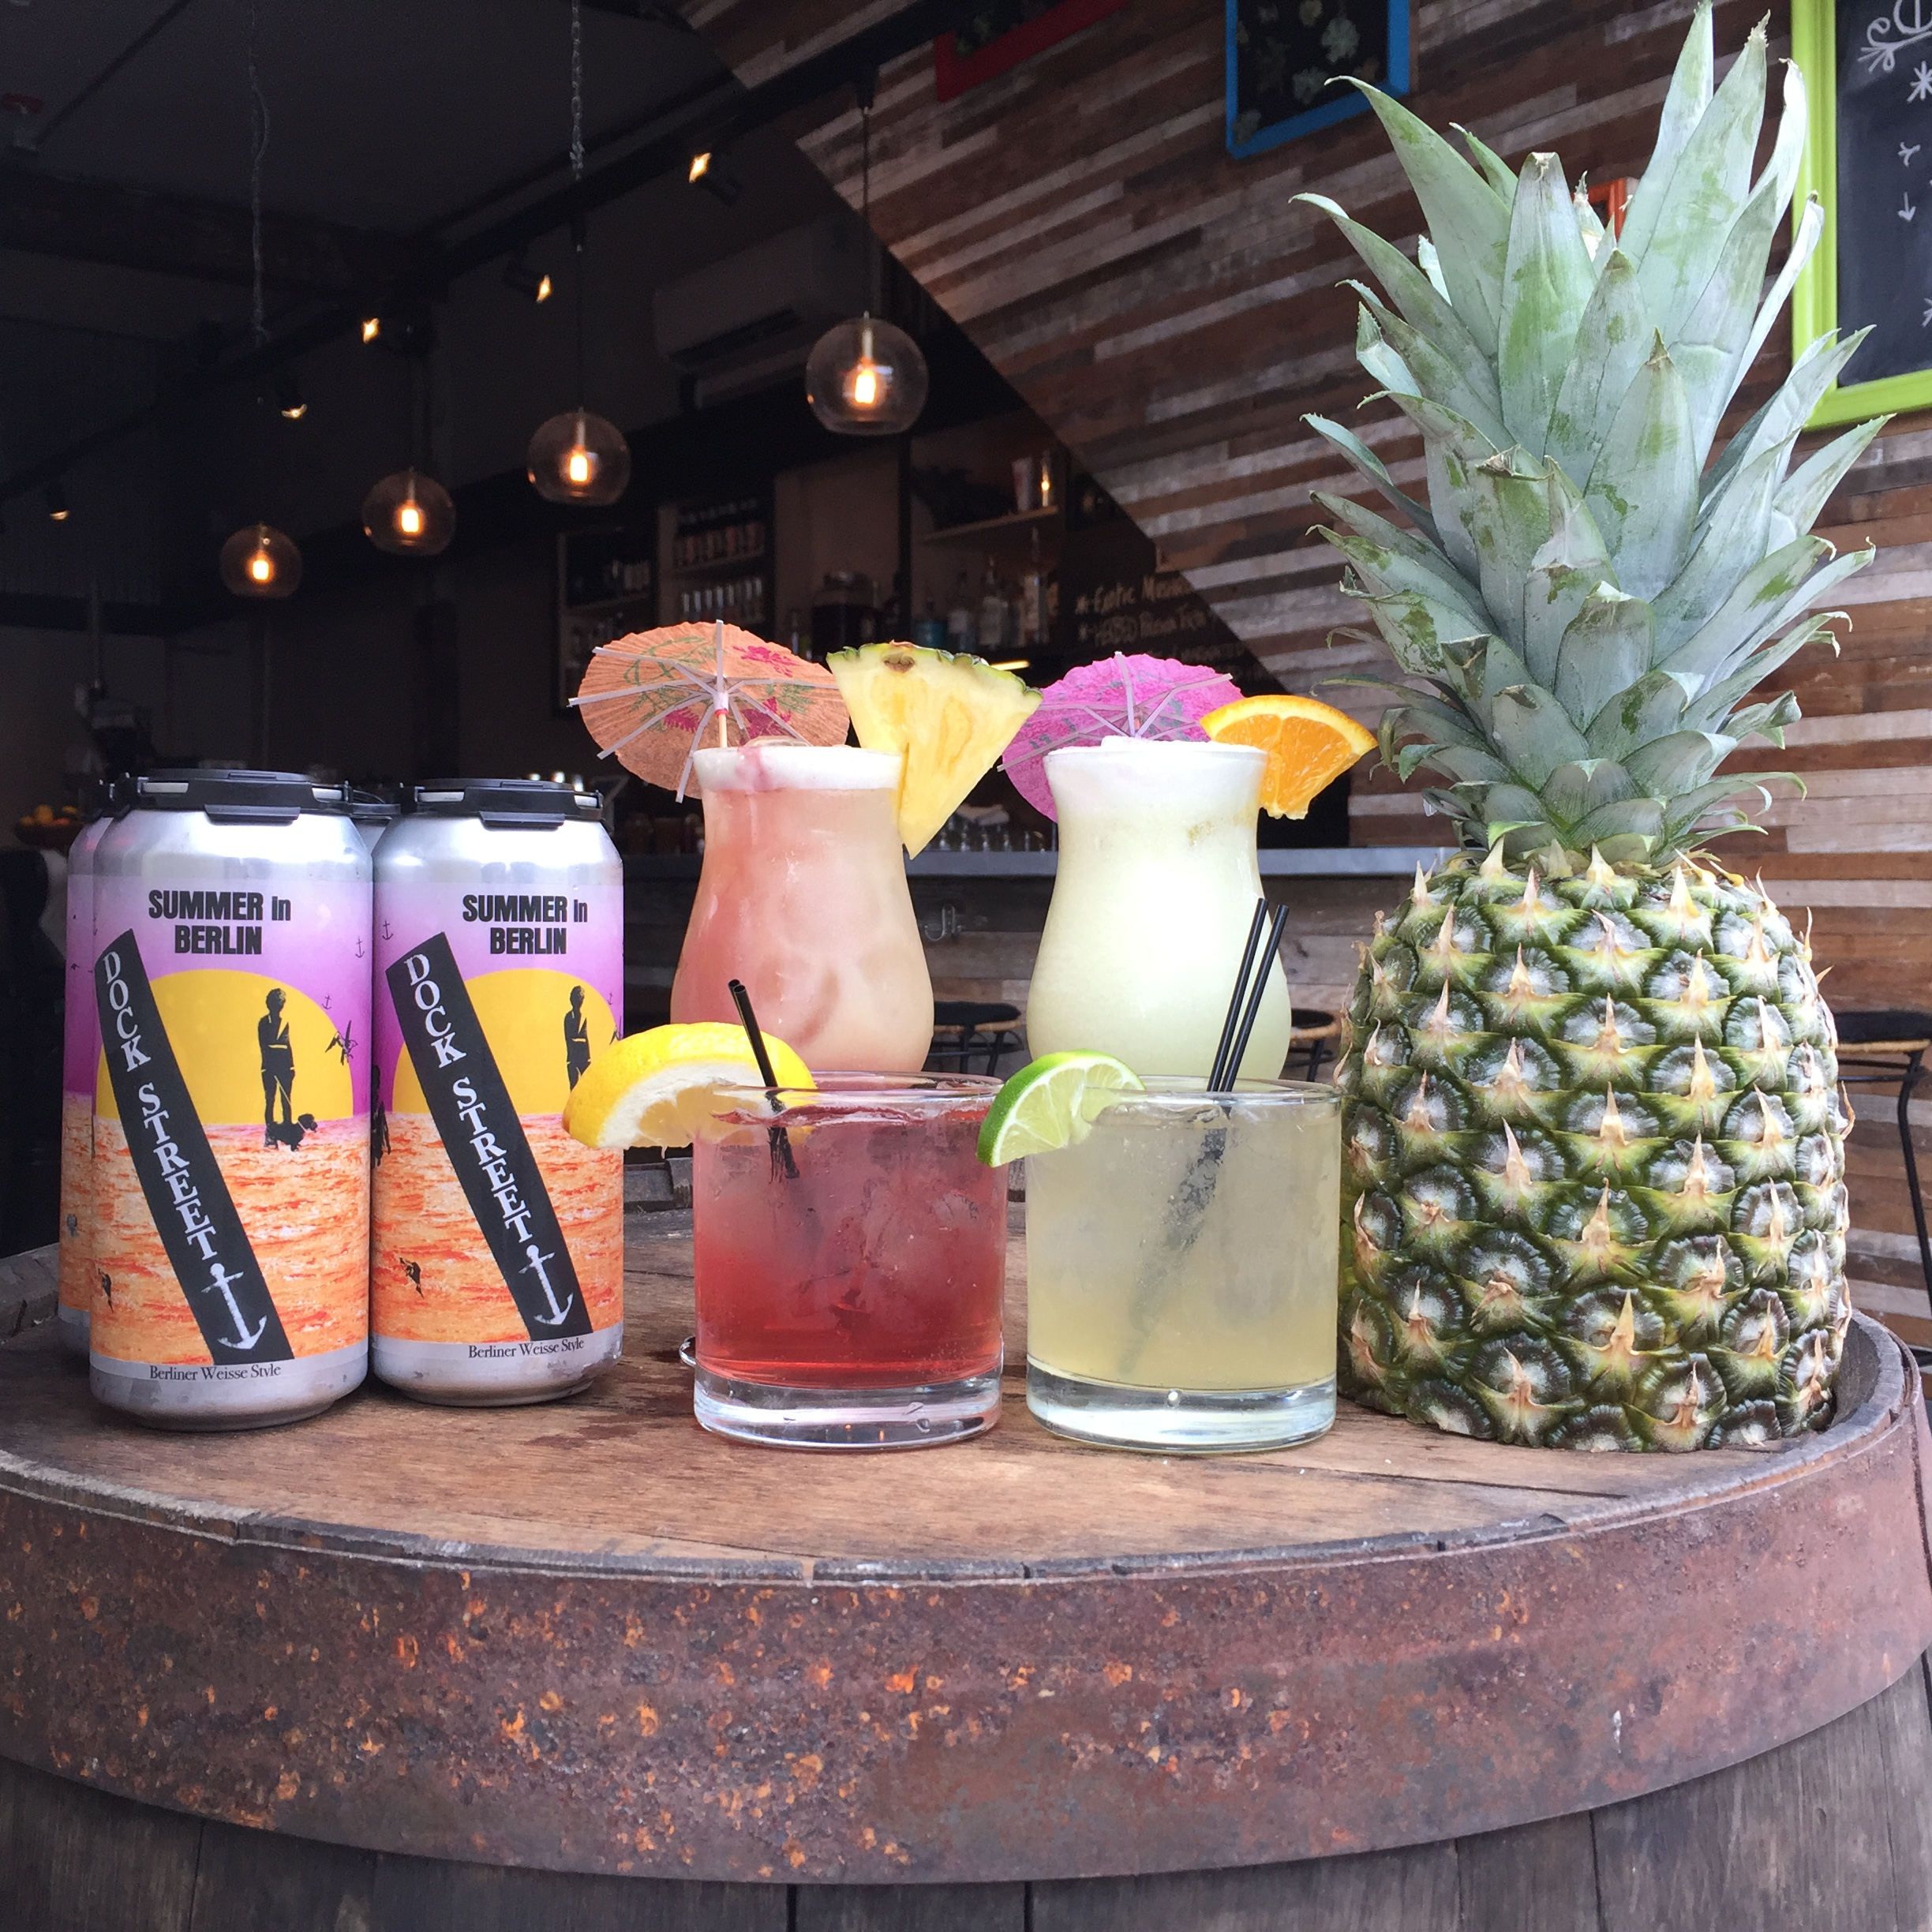 Back Row: Summer in Berlin Cans (New!), No Ties, Honey Don't. Front Row:Gin in Berlin, Salt 'n Smokey.